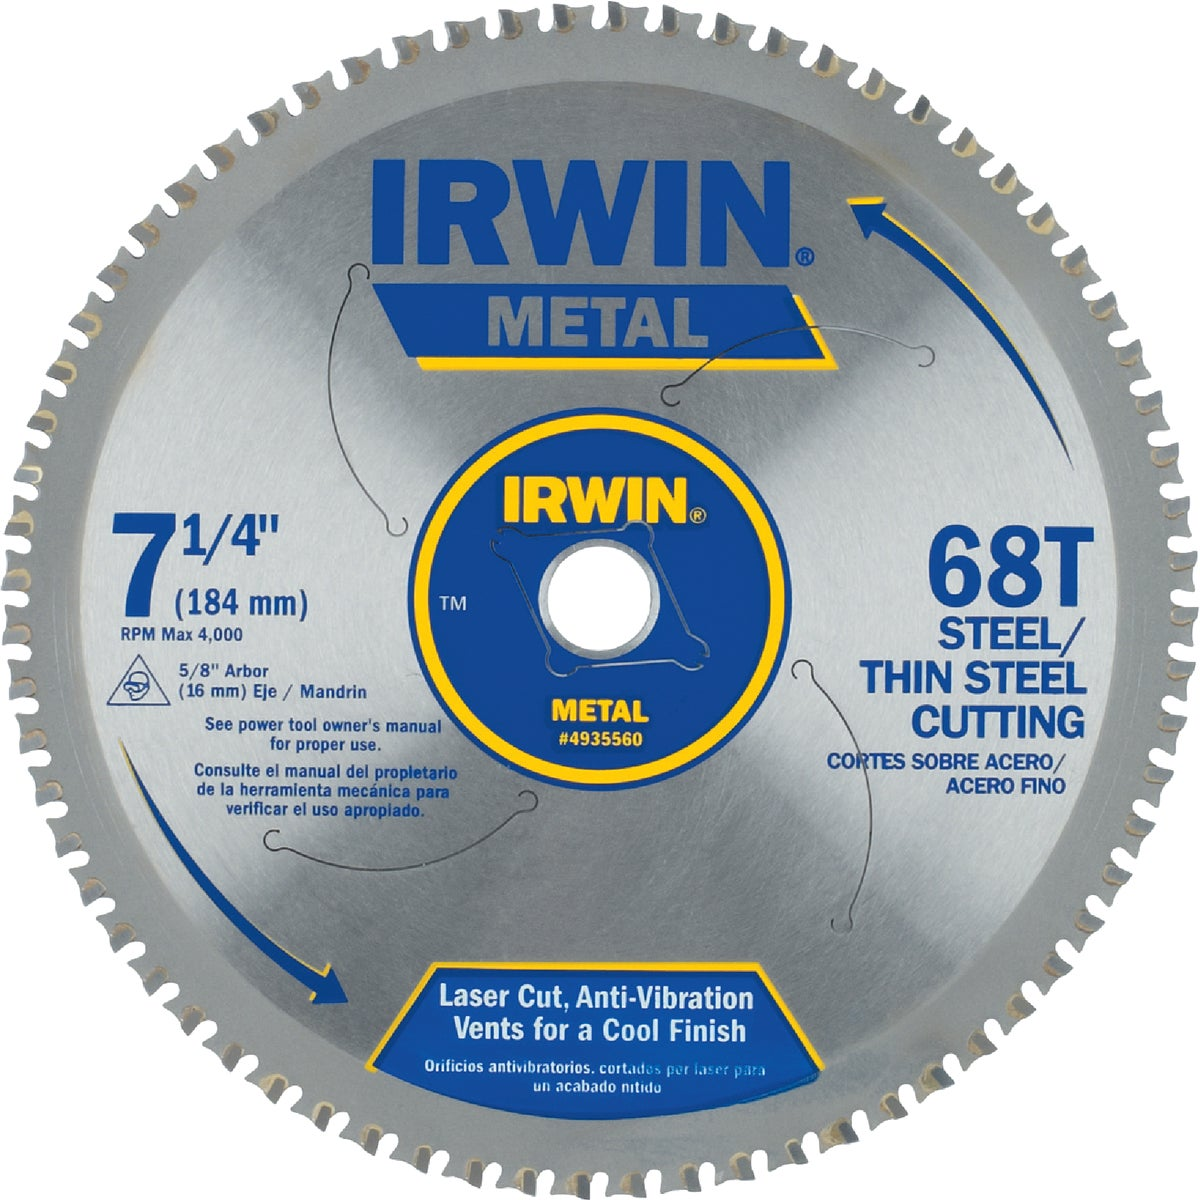 "7-1/4"" 68T METAL BLADE - 4935560 by Irwin Industr Tool"